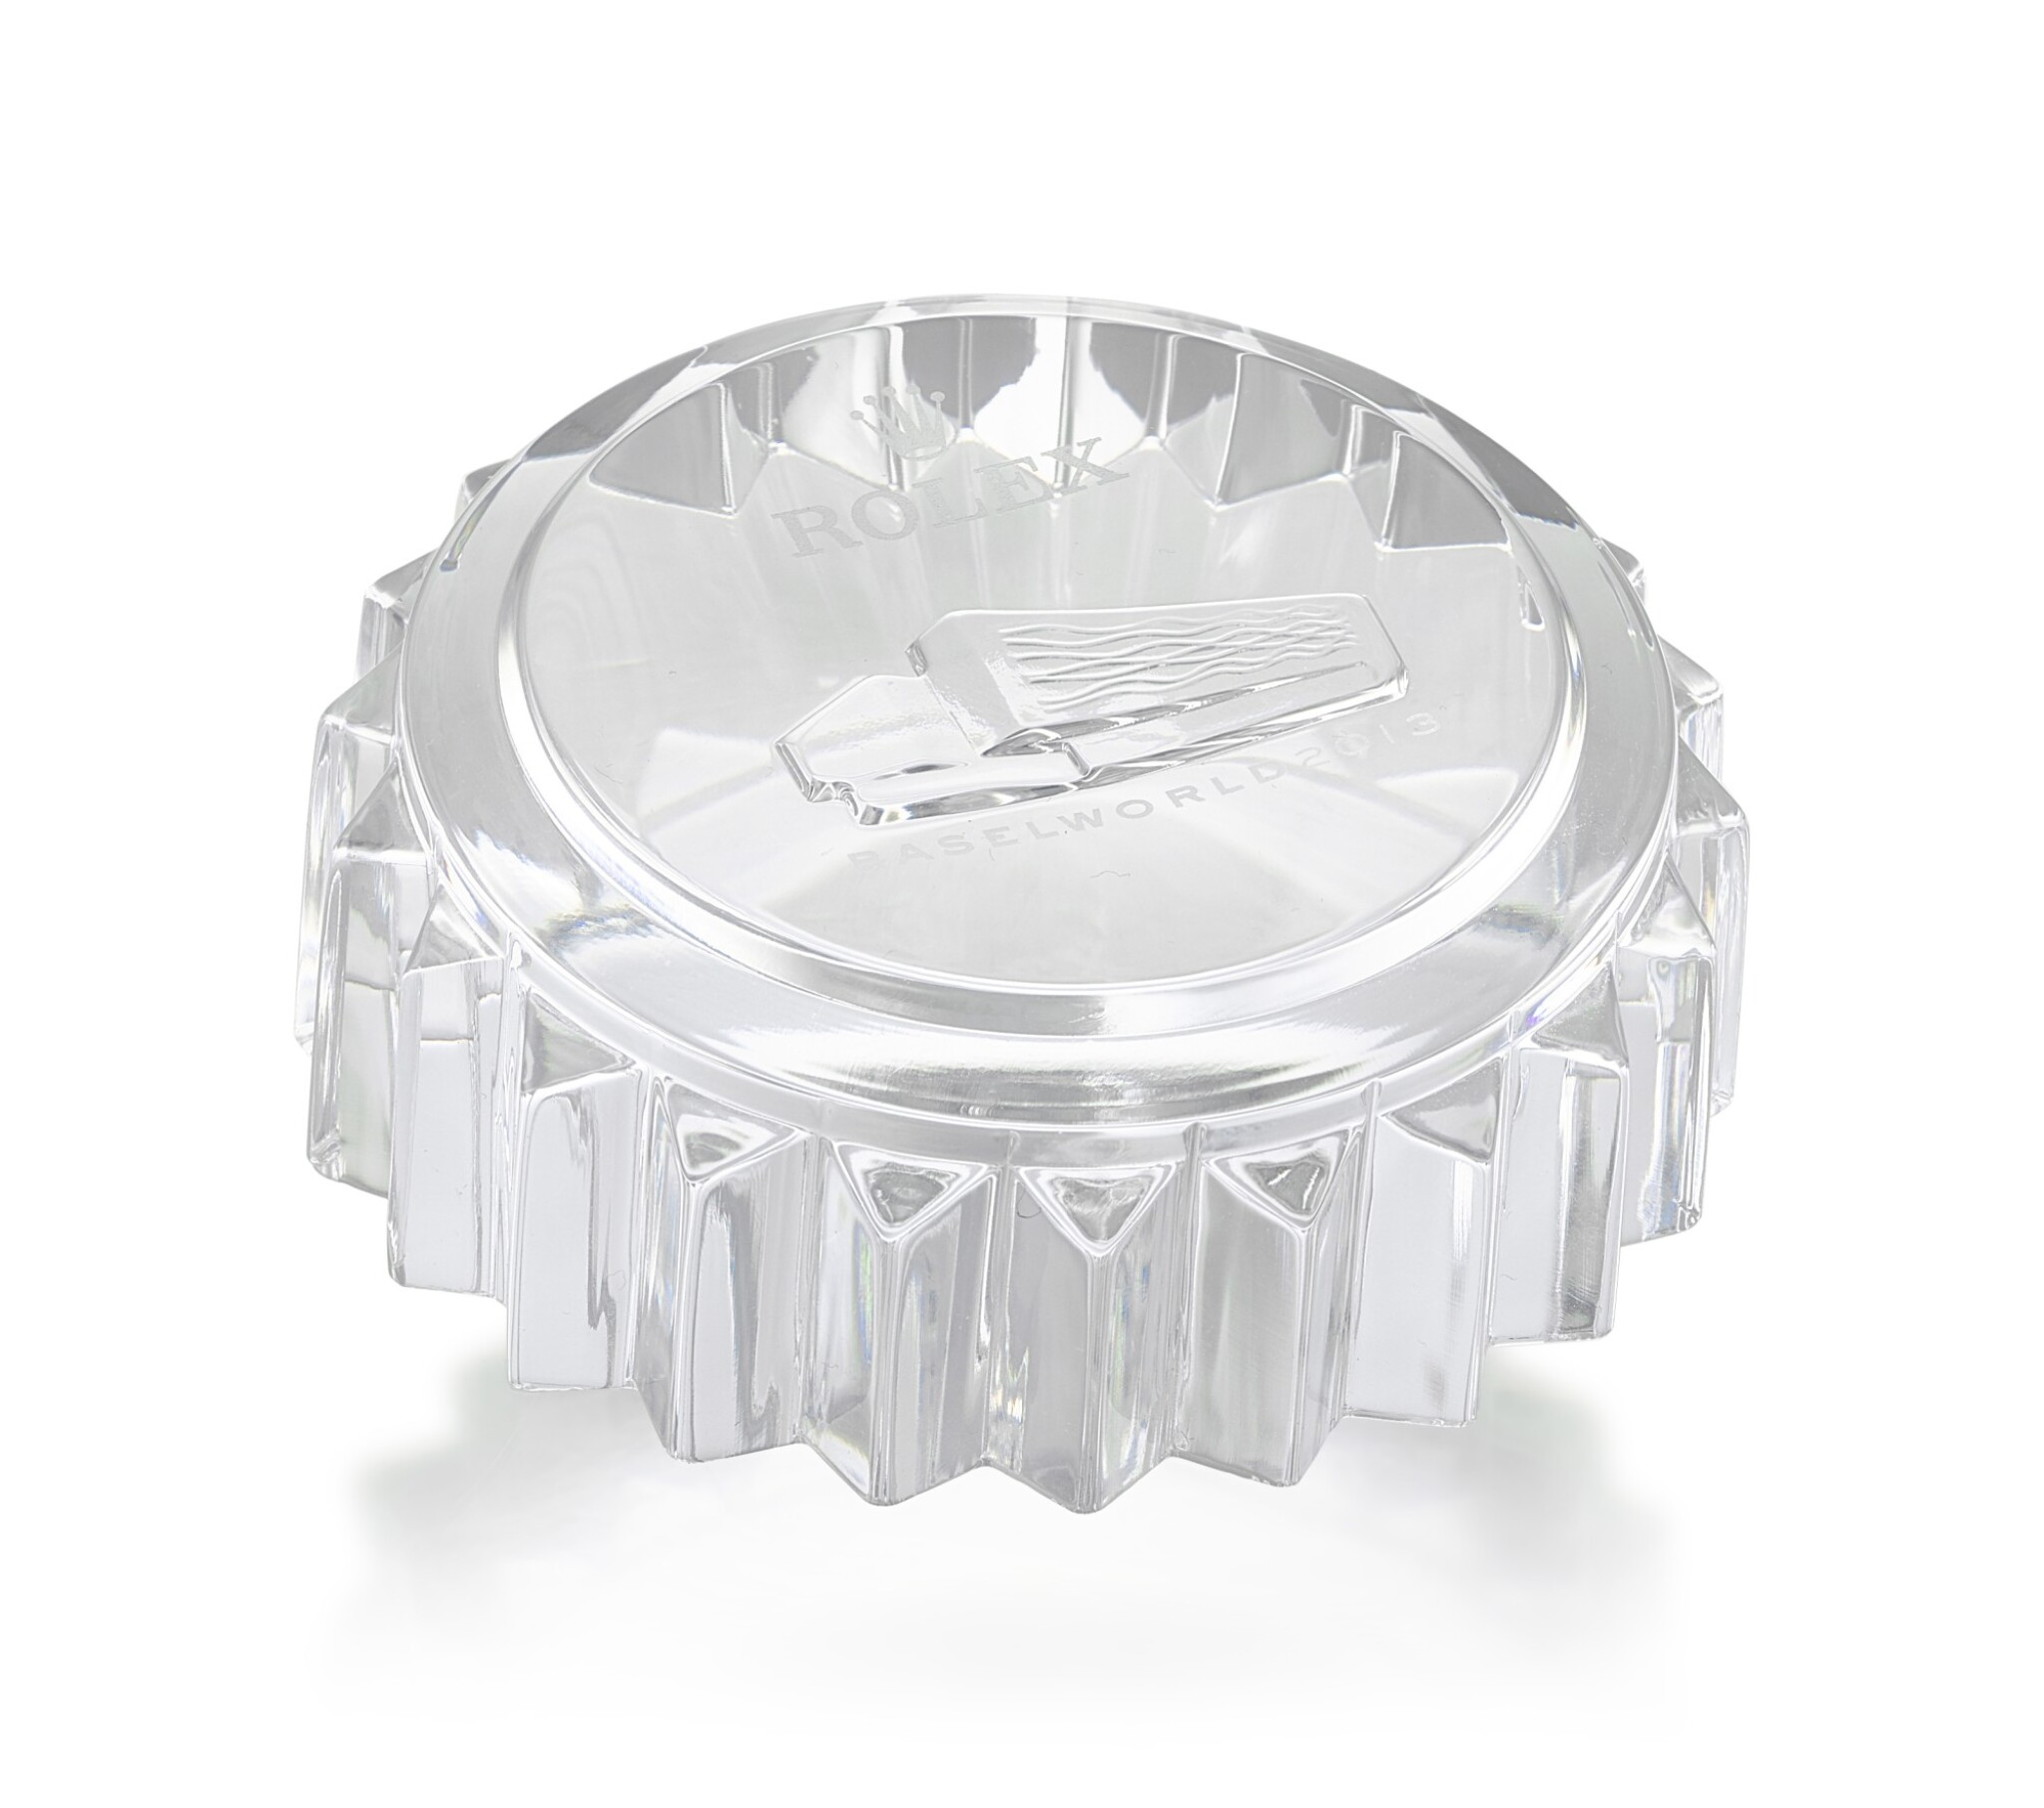 ROLEX   A CRYSTAL PAPERWEIGHT, MADE FOR BASELWORLD 2013